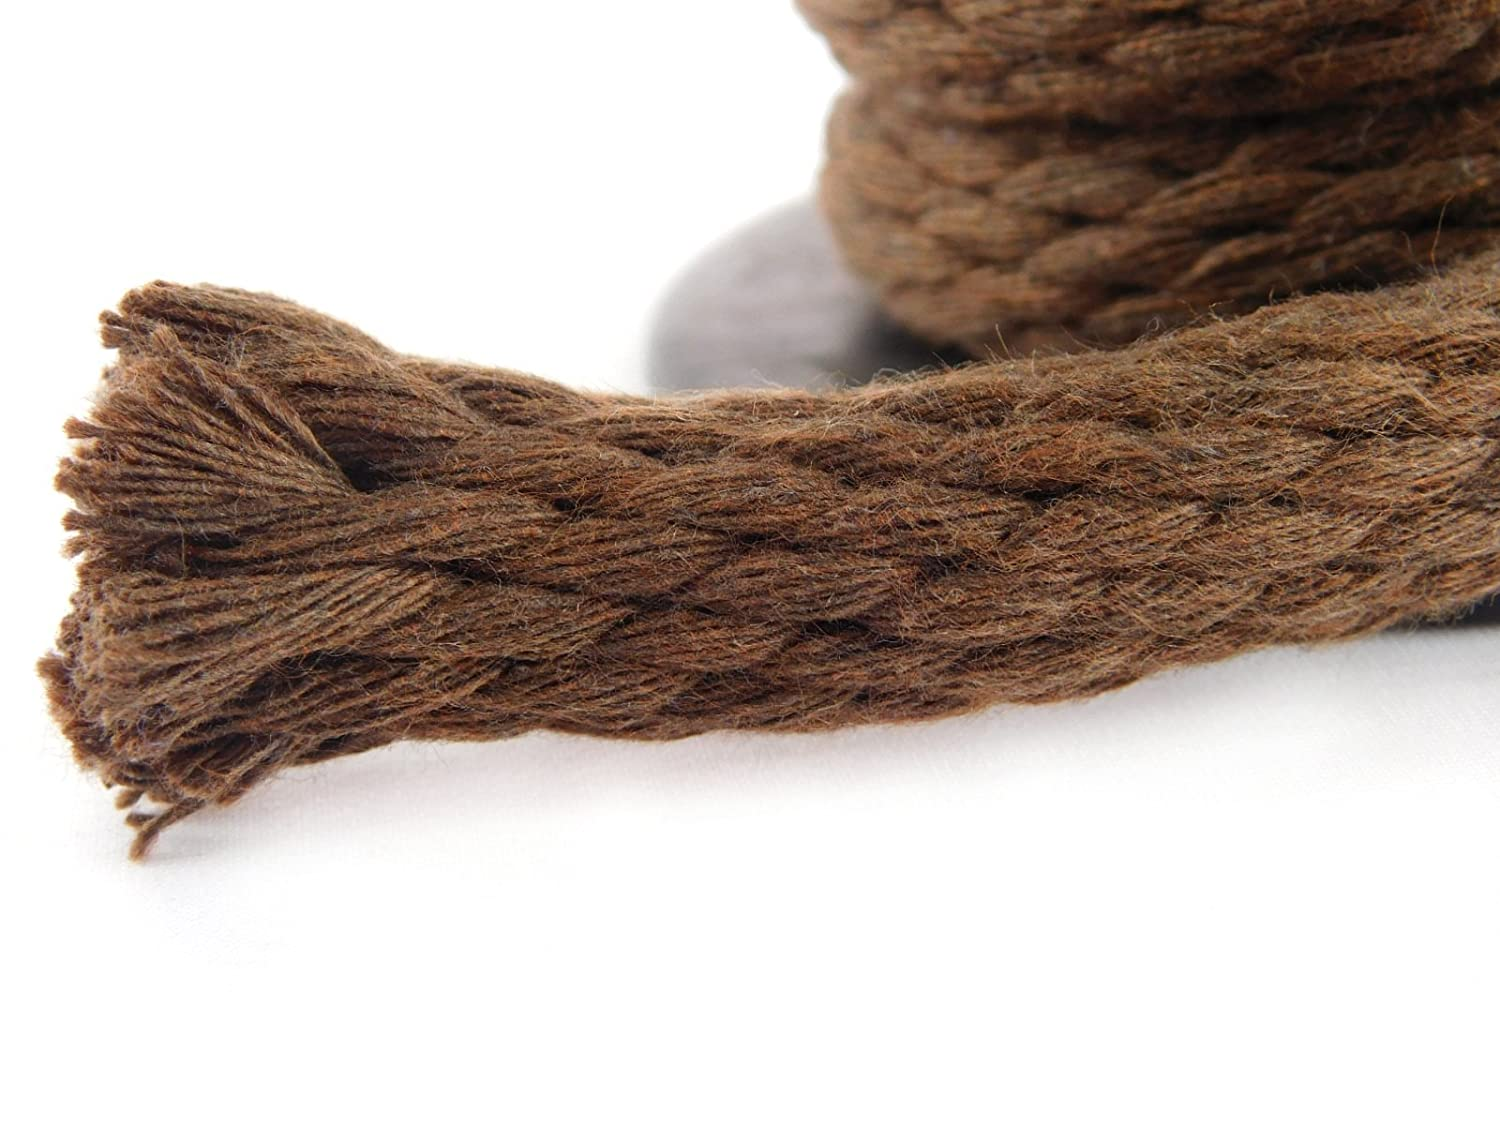 Ravenox Solid Braid Cotton Rope Macrame Projects Made in The USA Variety of Colors and Lengths Clothesline Utility Rope and More Used as Sash Cord